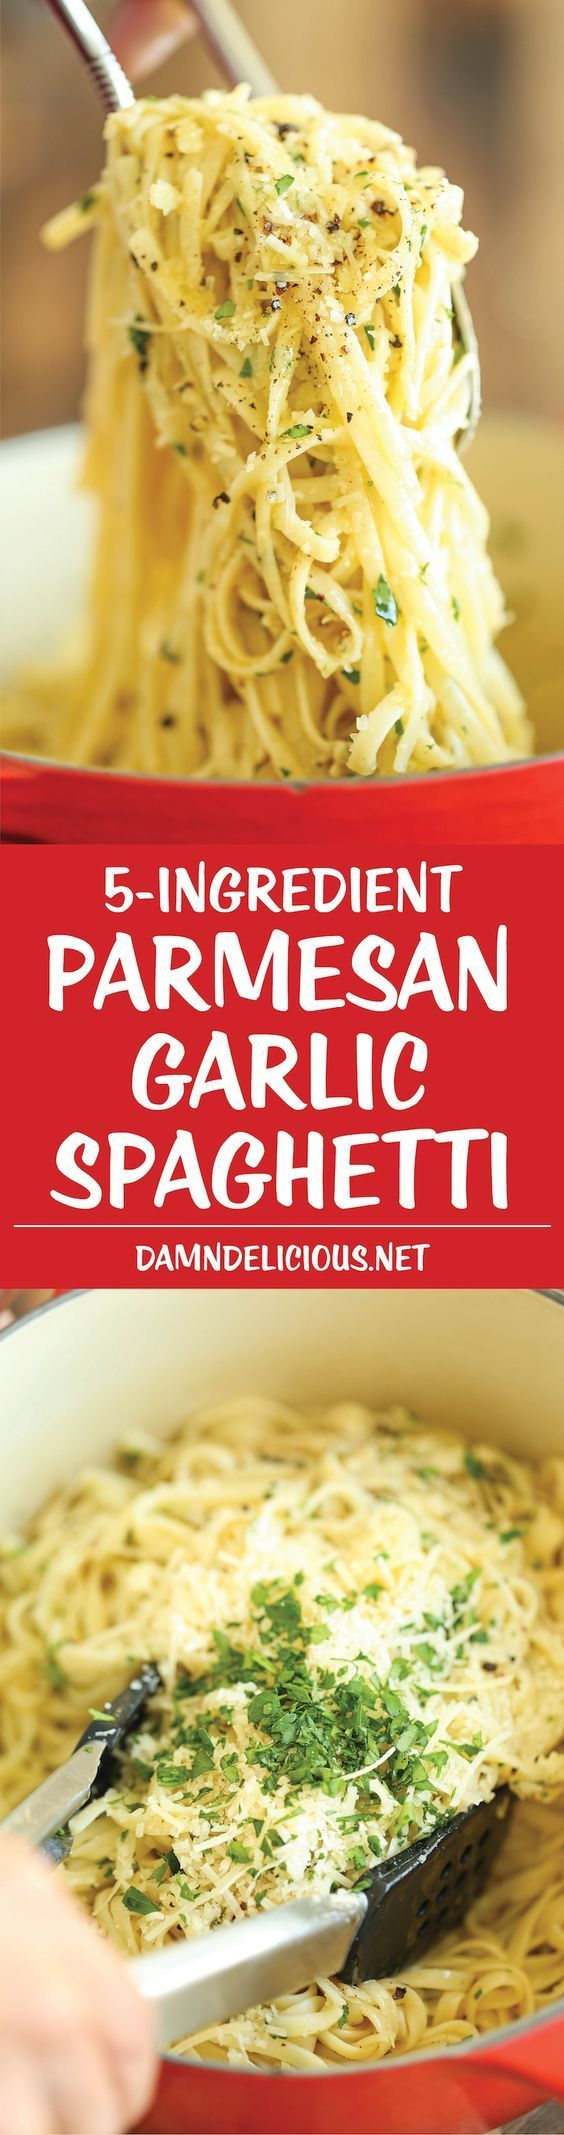 Parmesan Garlic Spaghetti - 5 ingredients. 20 minutes. With melted butter, garlic and freshly grated Parmesan. A winning combination for the ENTIRE family!